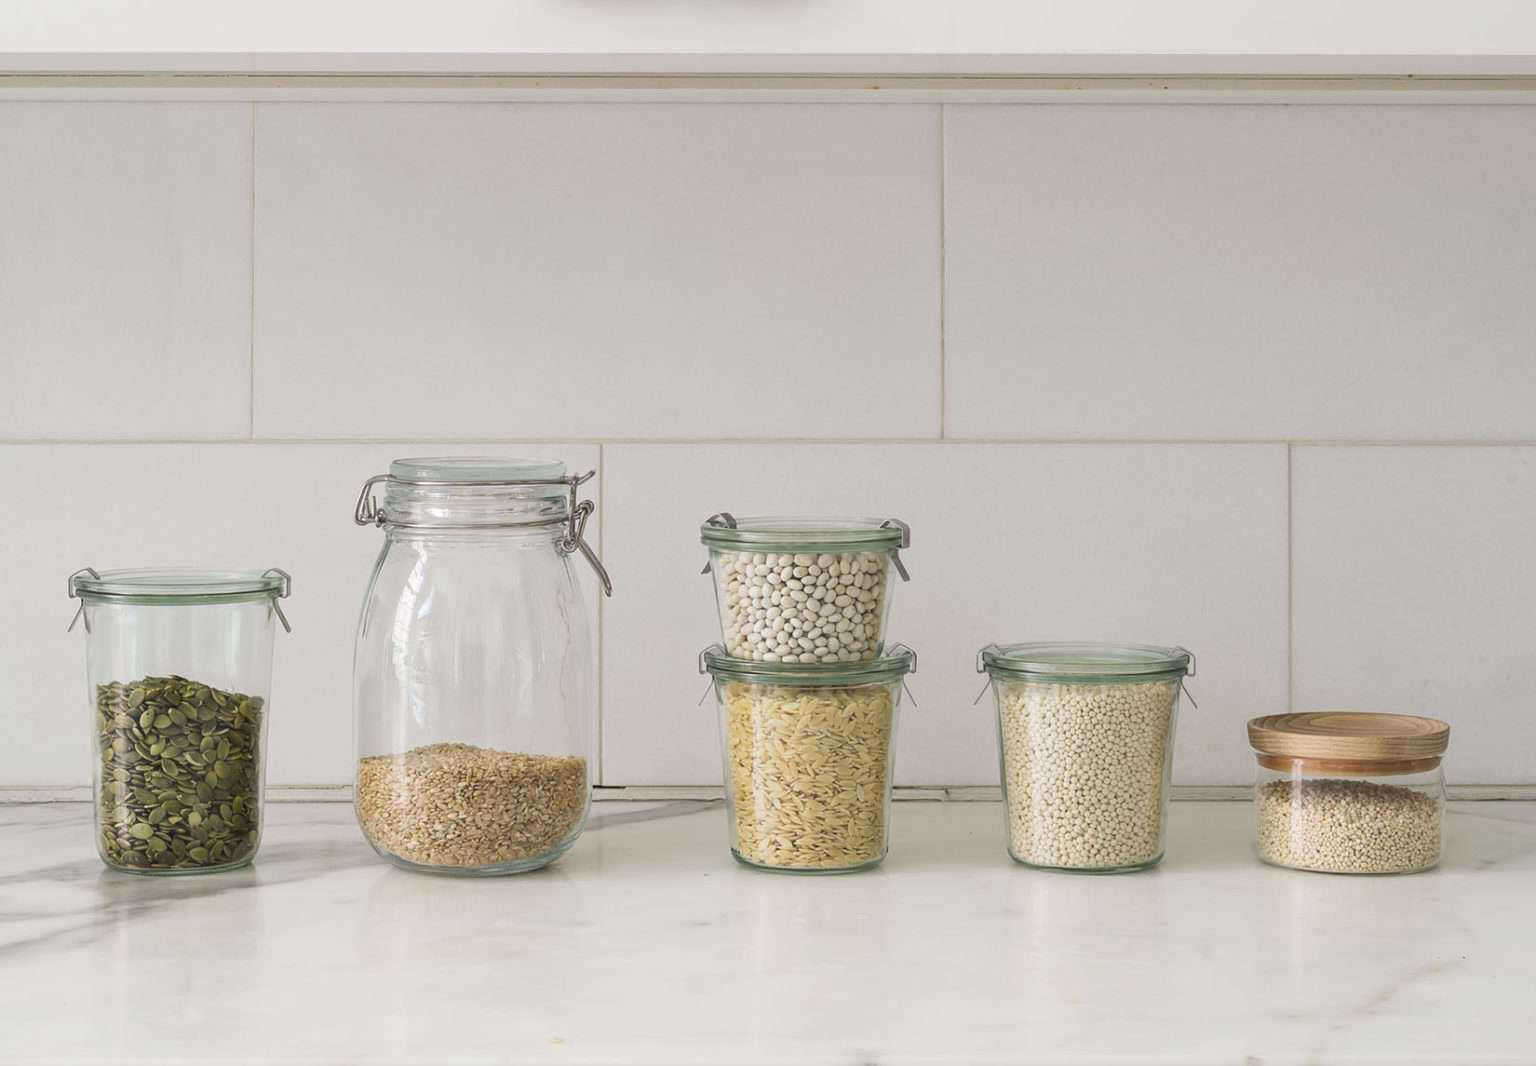 Decanting Grains in Weck Jars Styling Alexa Hotz Photo Matthew Williams & The Organized Pantry: 8 Rules for Decanting Dried Goods - The ...